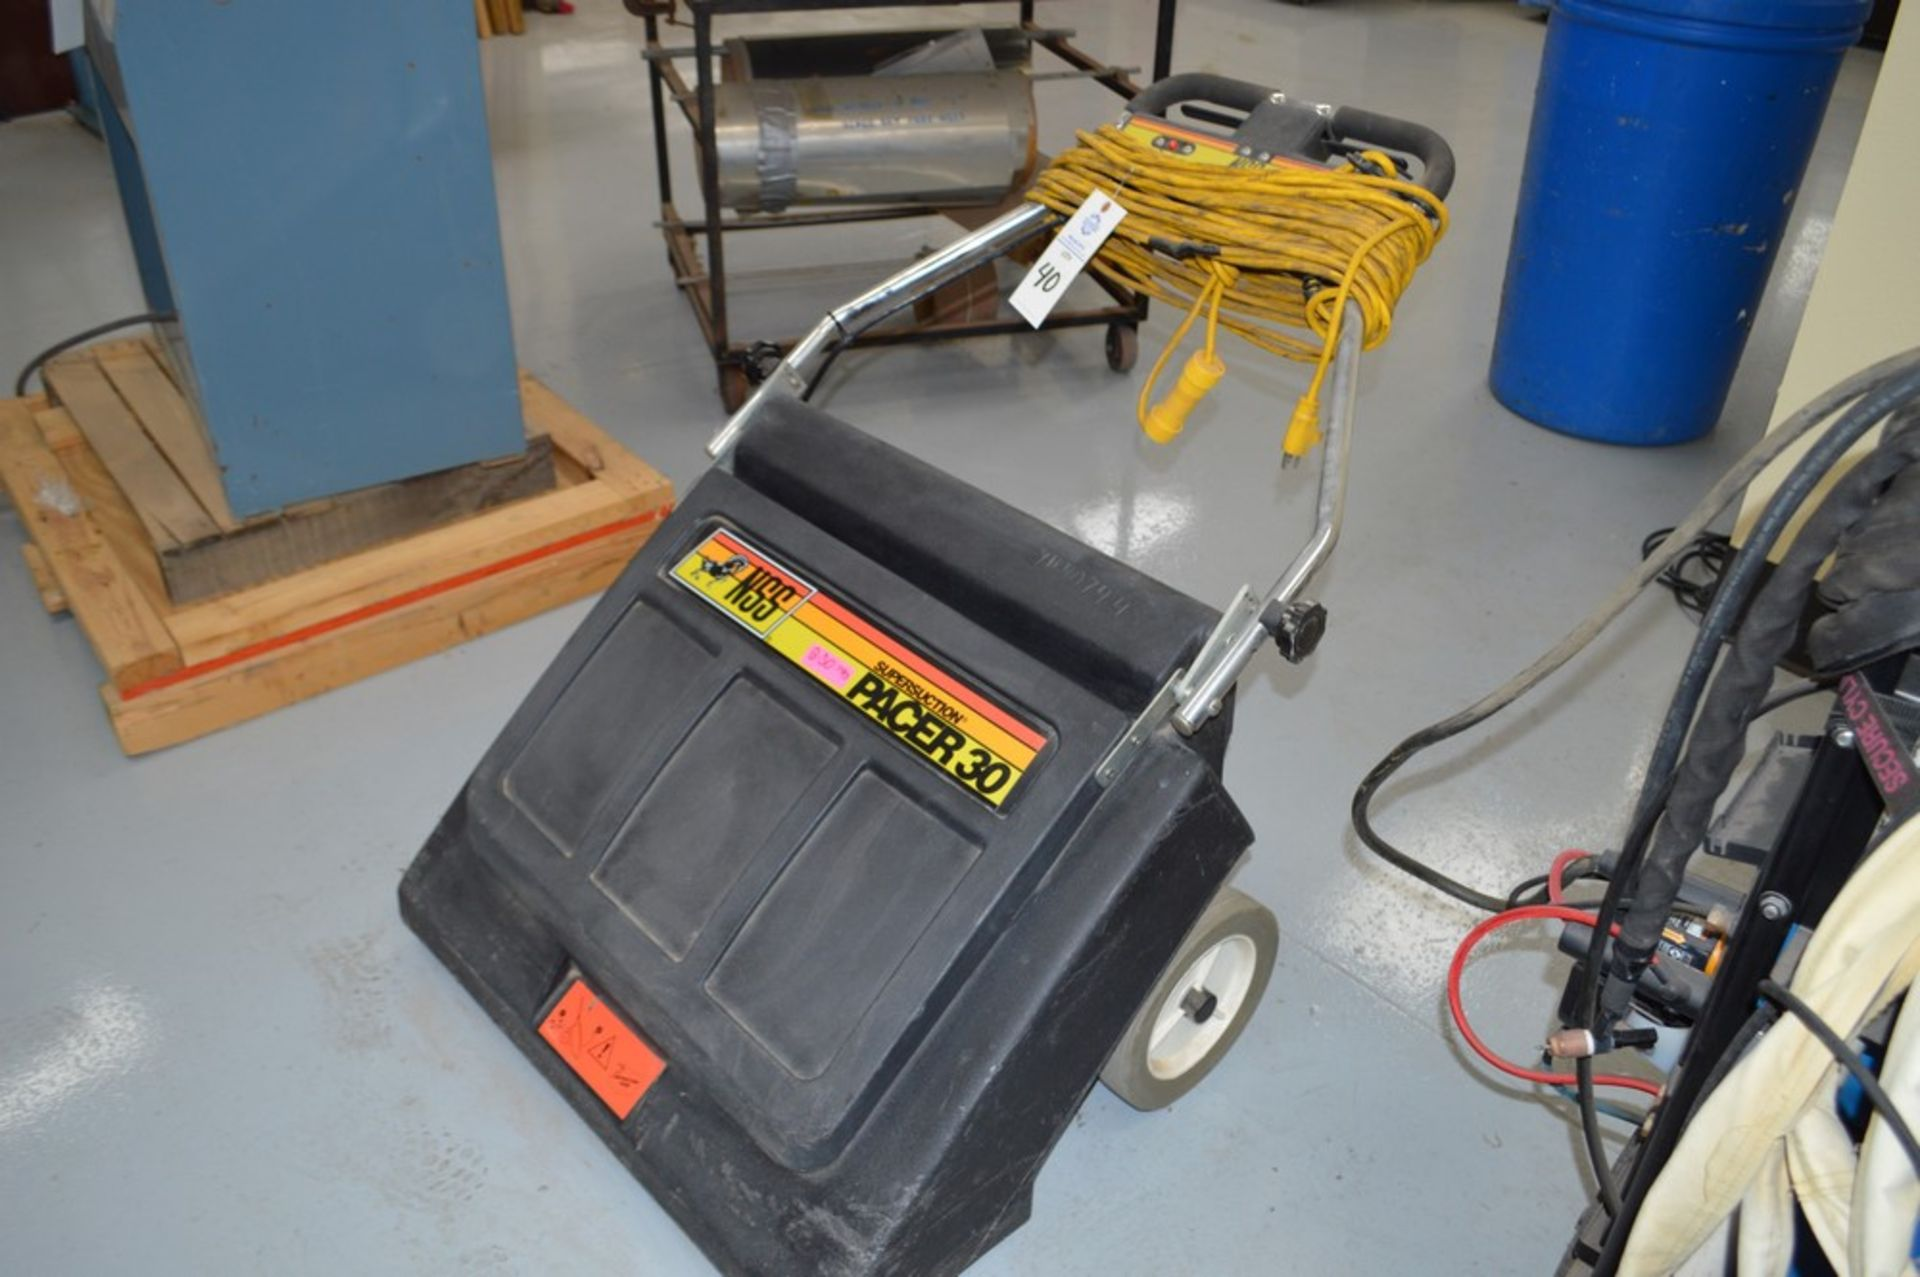 NSS, Super Suction Floor Vacuum Cleaner Model Pacer 30 - Image 4 of 5